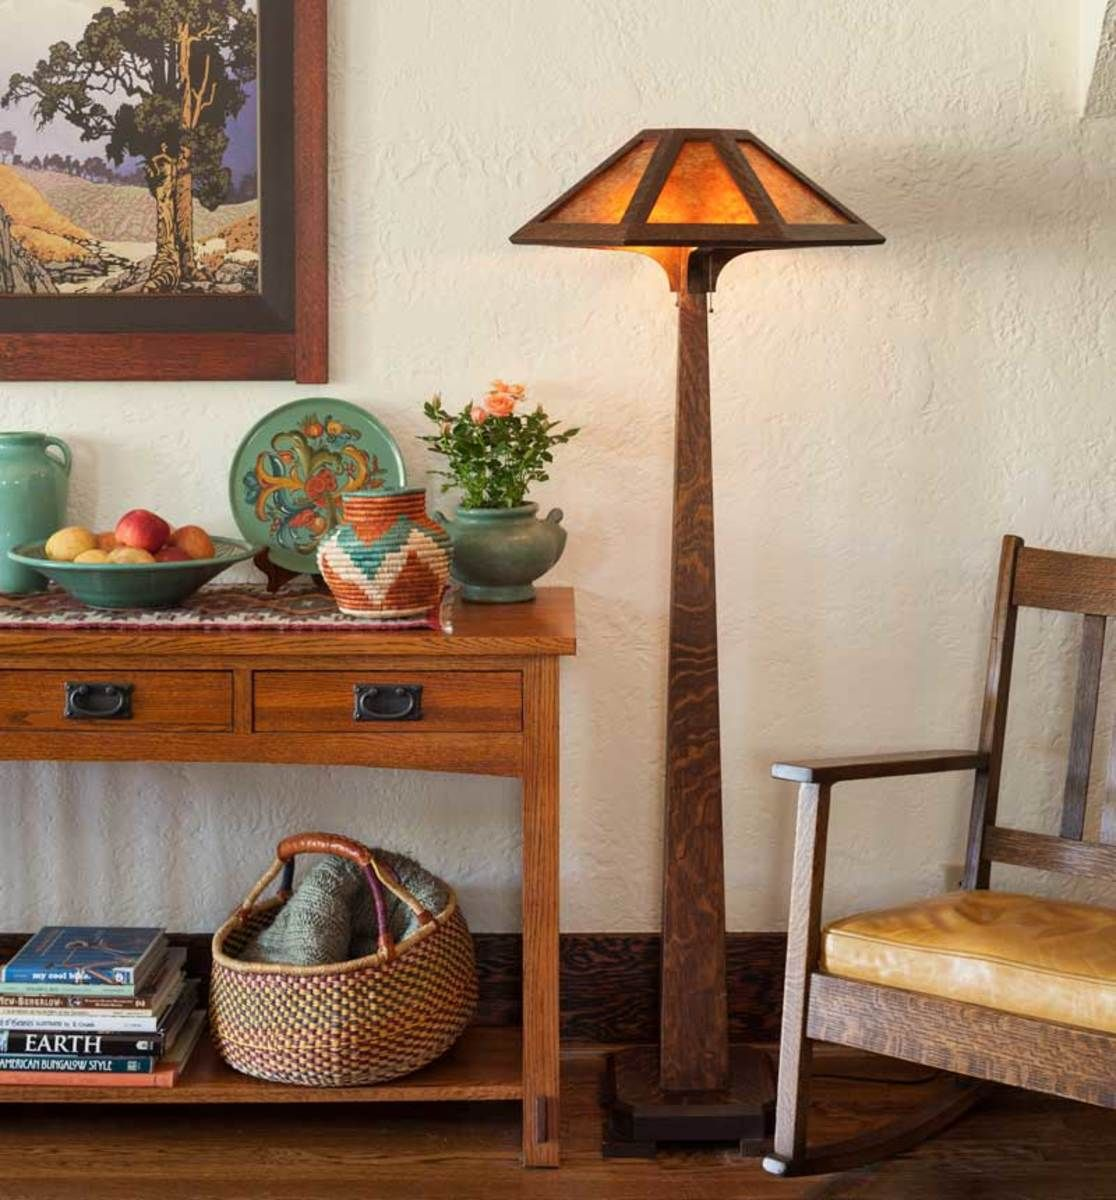 A Royal Craftsman Quarter Sawn Oak Side Table In The Living Room Holds Ca